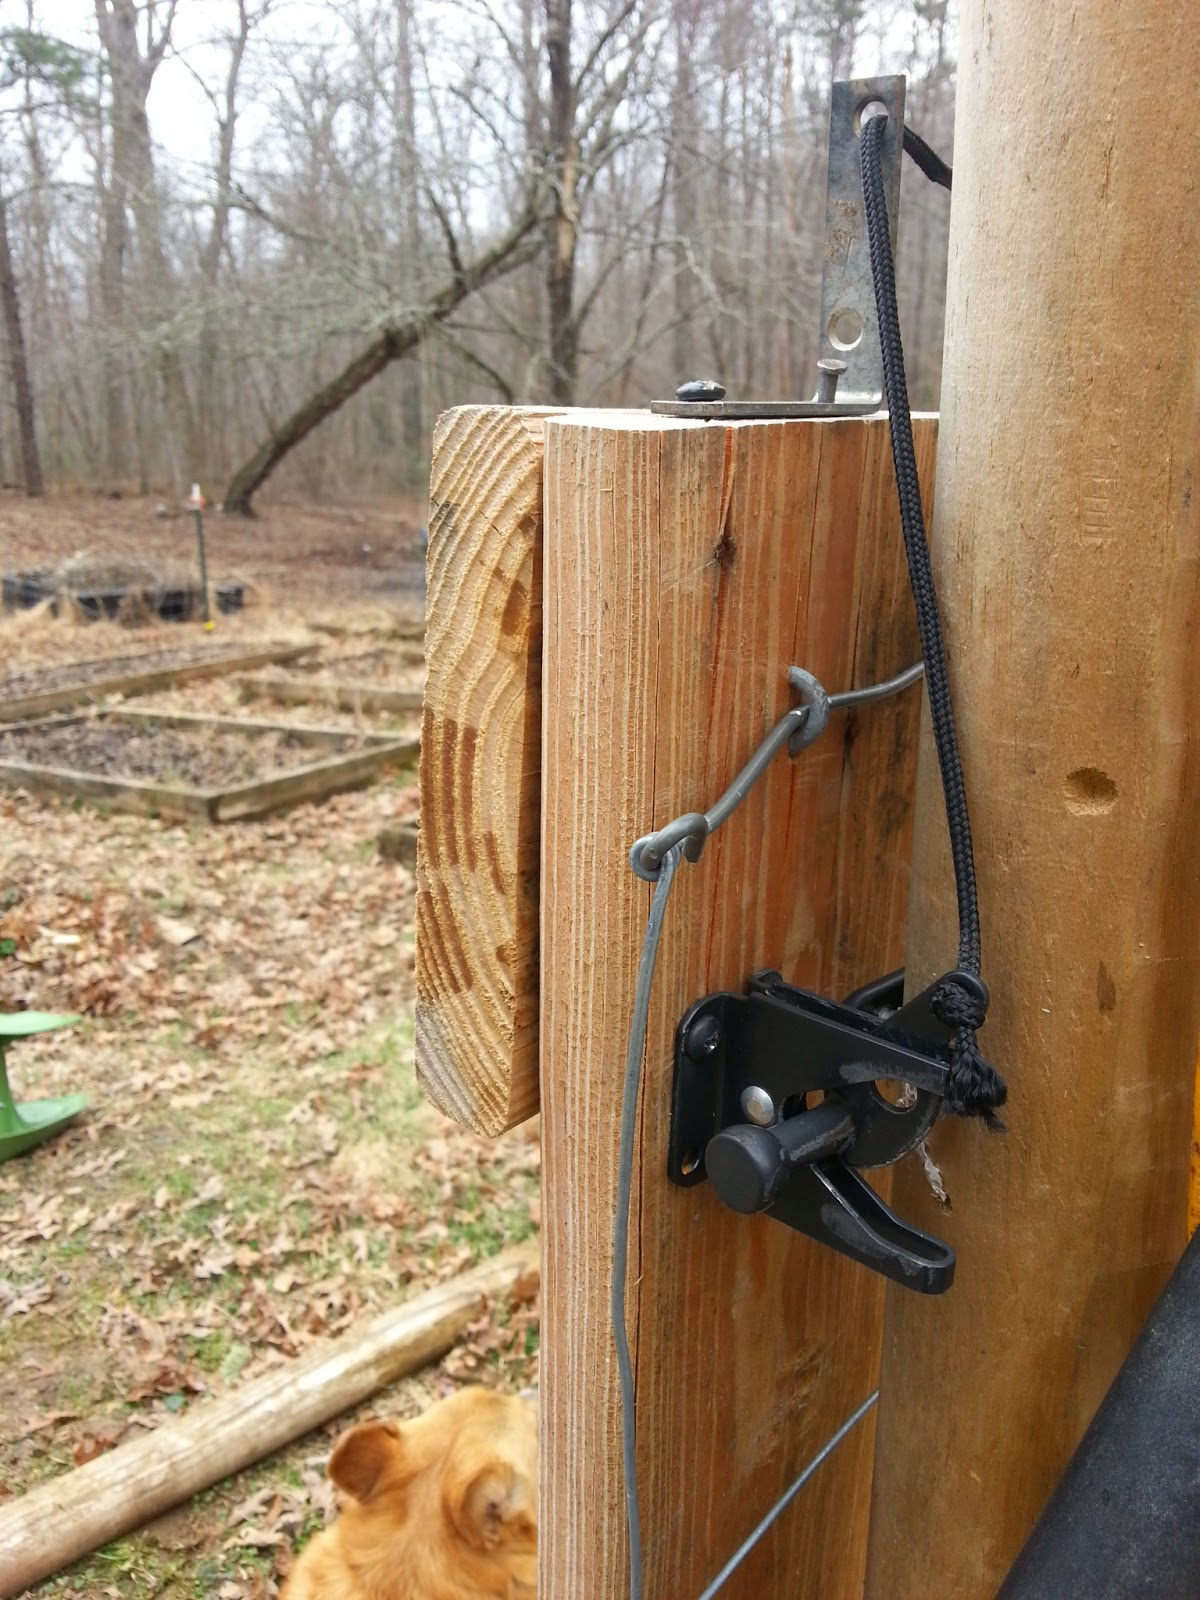 A Garden Gate Latch May Not Be As Exciting As A Bear Sighting, But For Mom  And I, Rigging Up The Latch Was A Great Accomplishment, And Deserves To Be  ...